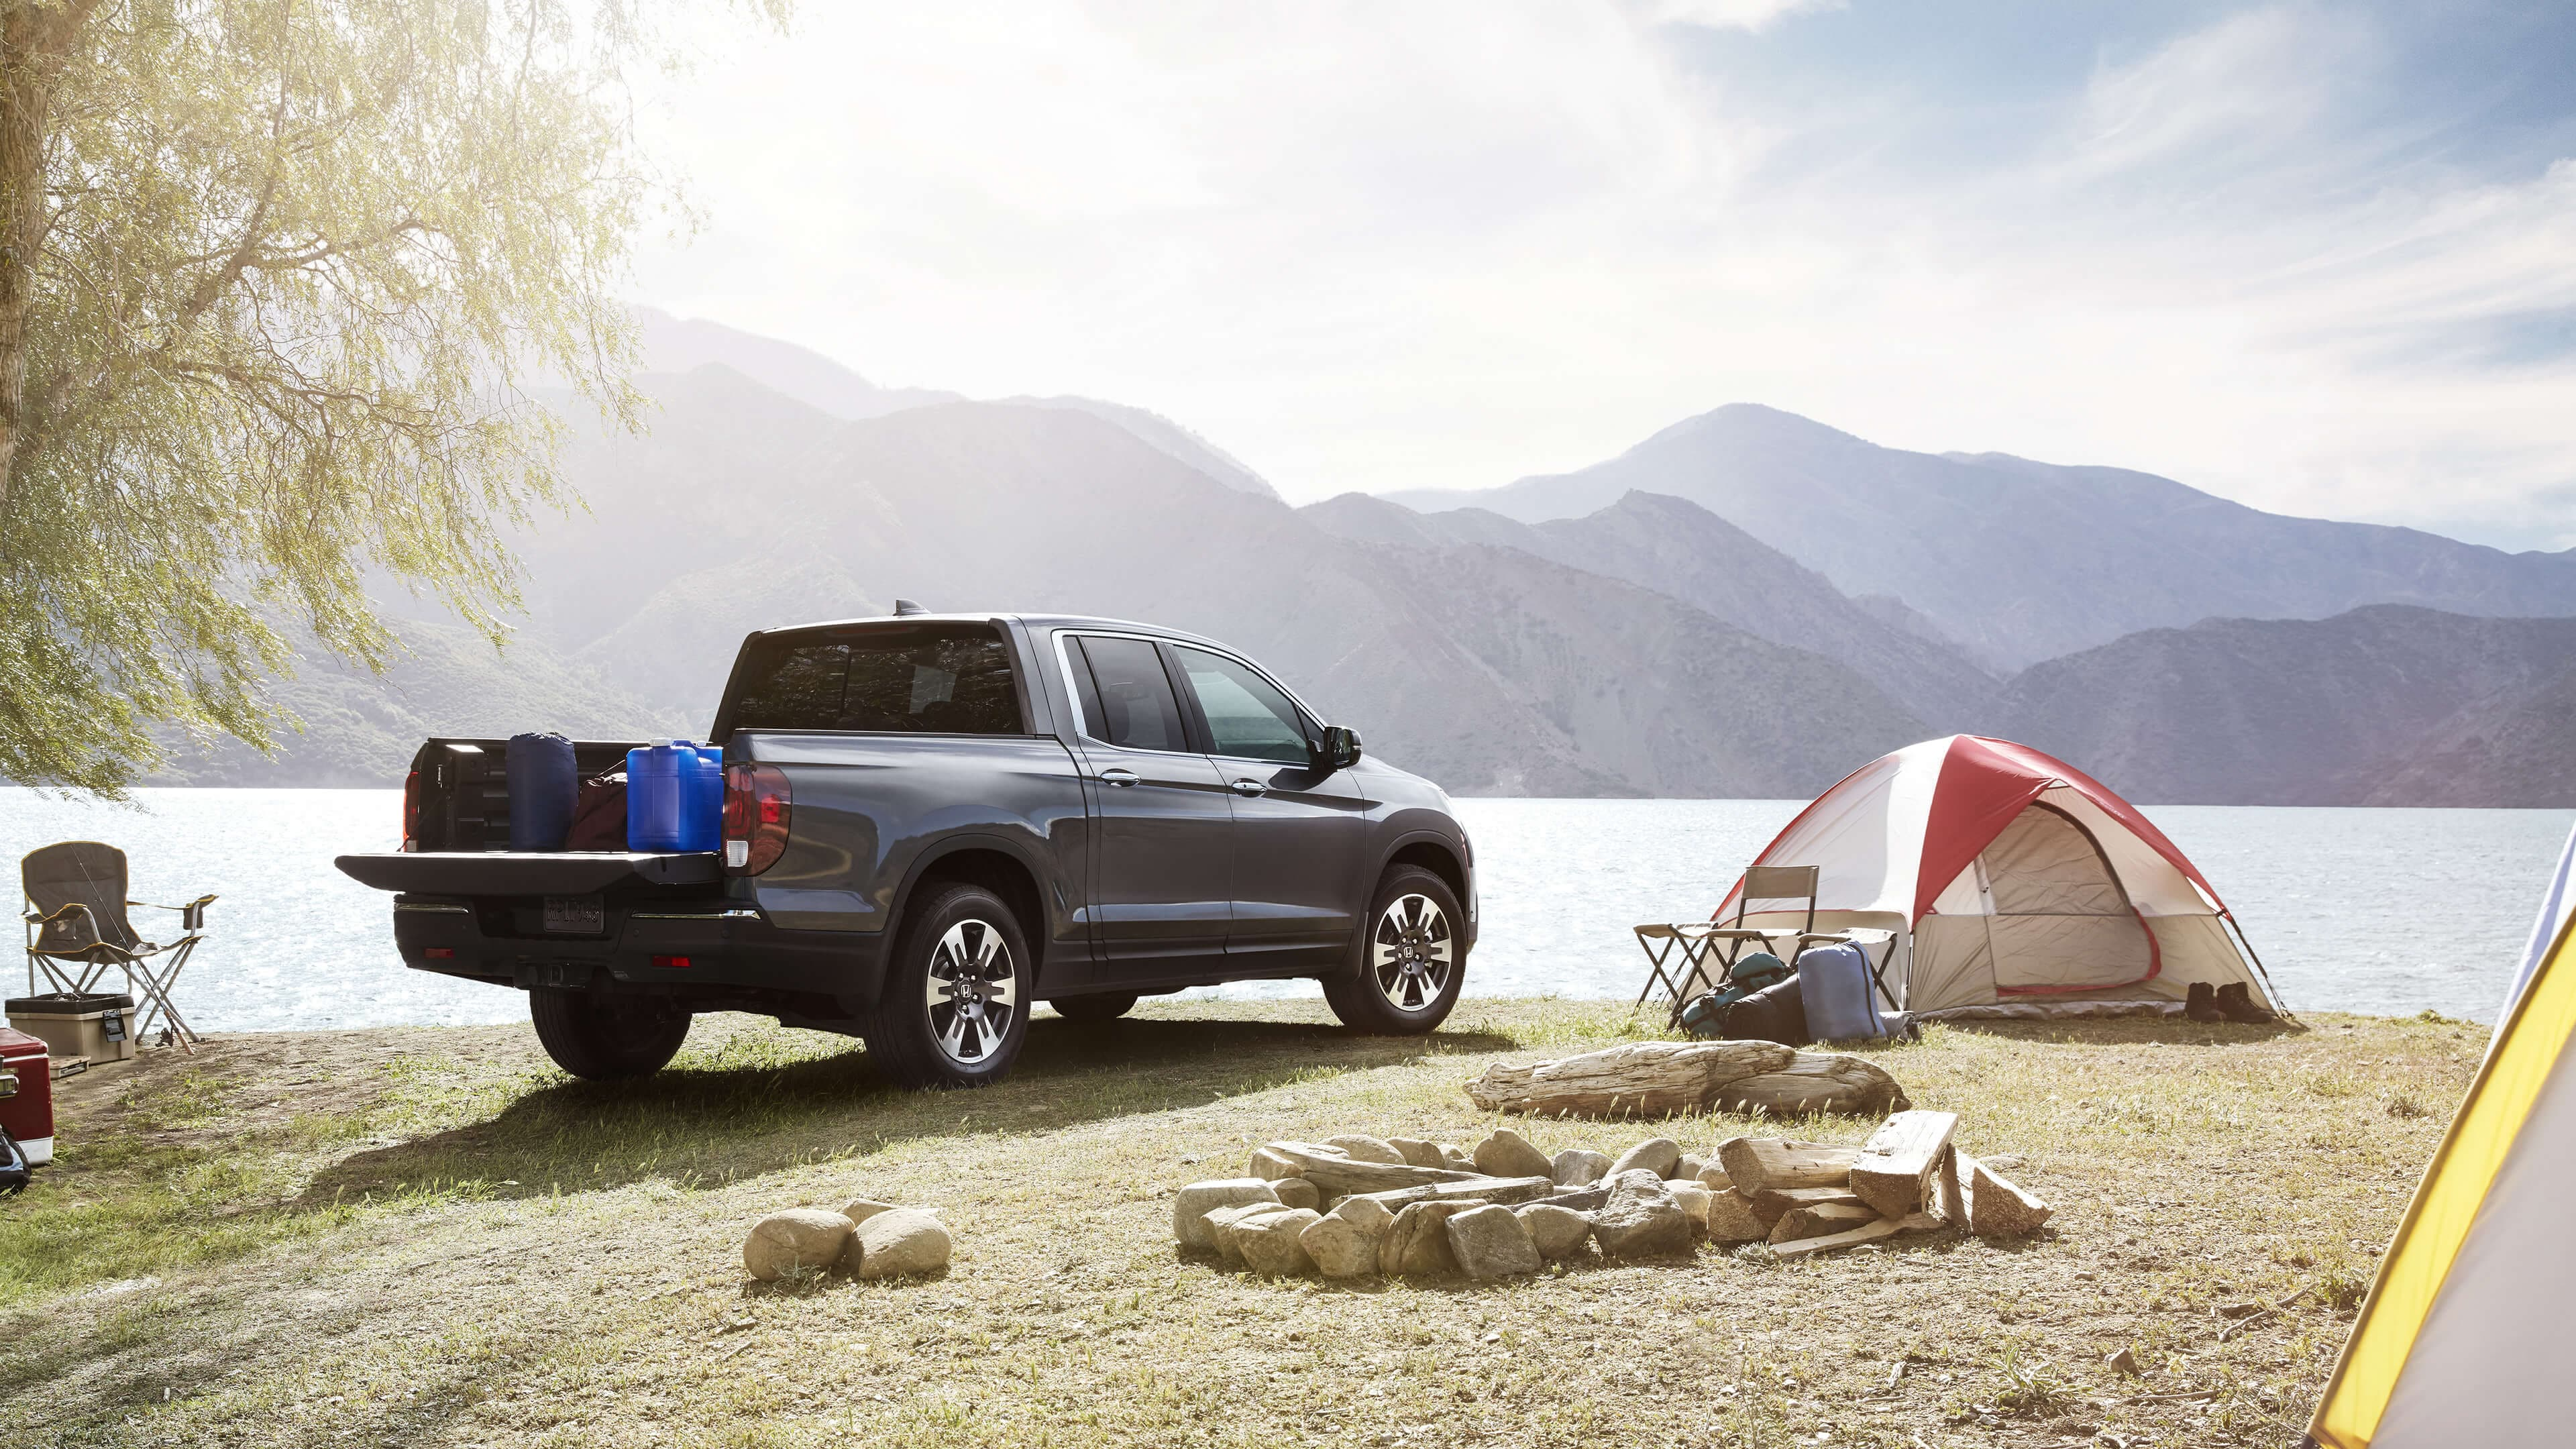 2020 Honda Ridgeline parked next to a tent and lake